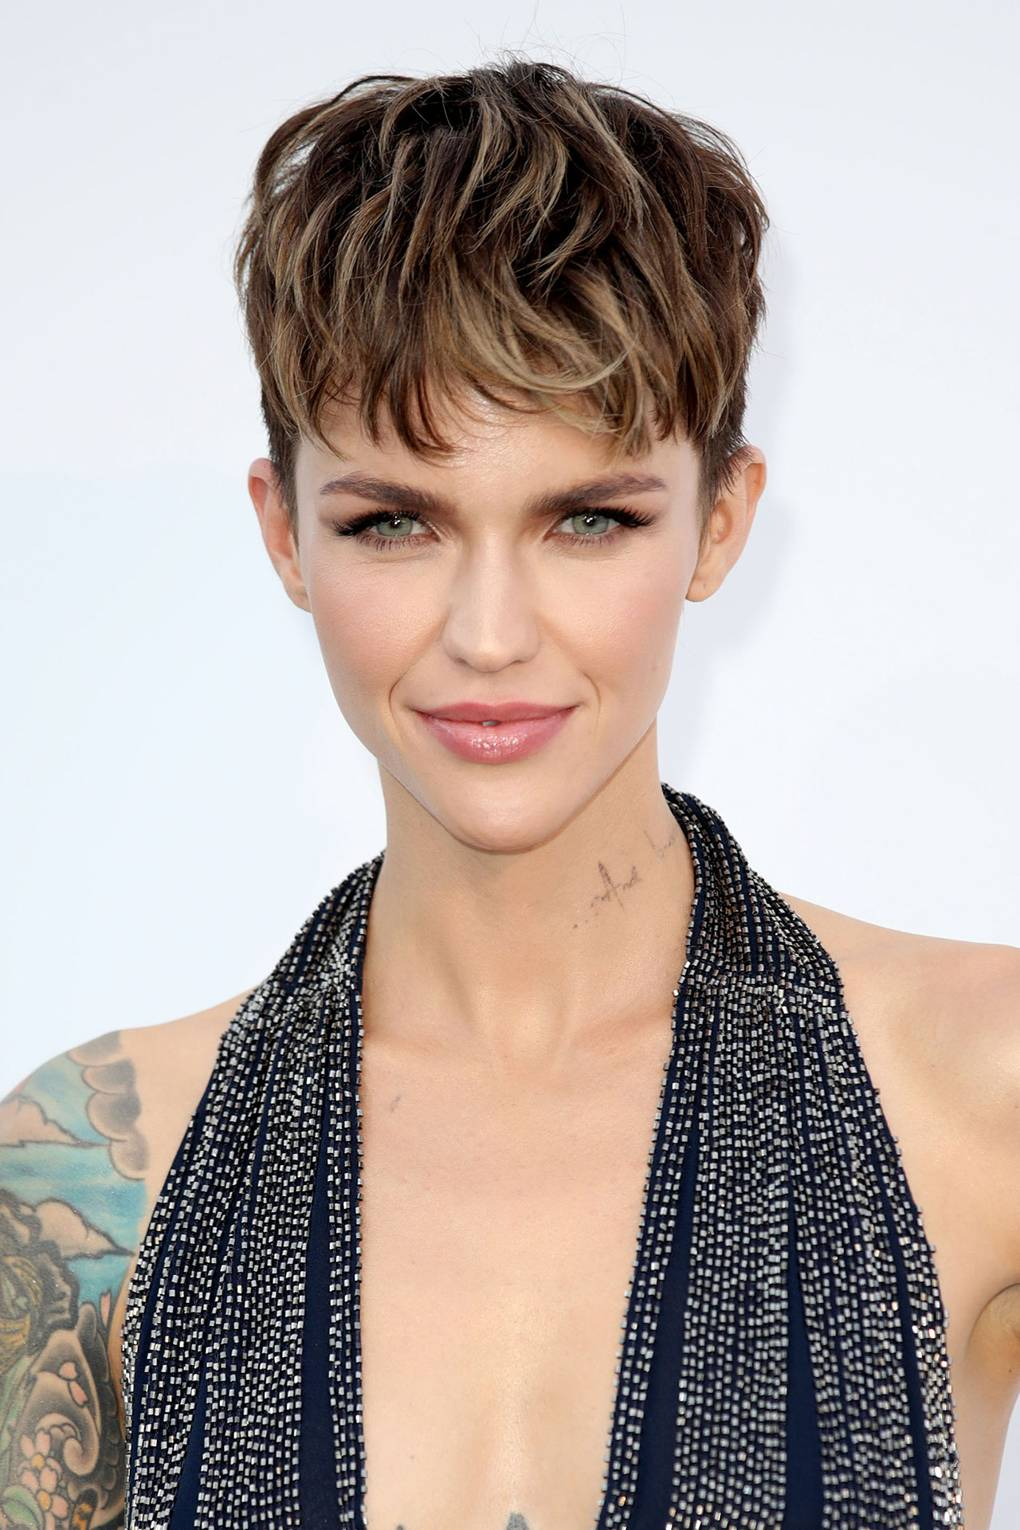 Foto Ruby Rose nudes (52 photos), Tits, Fappening, Boobs, panties 2006